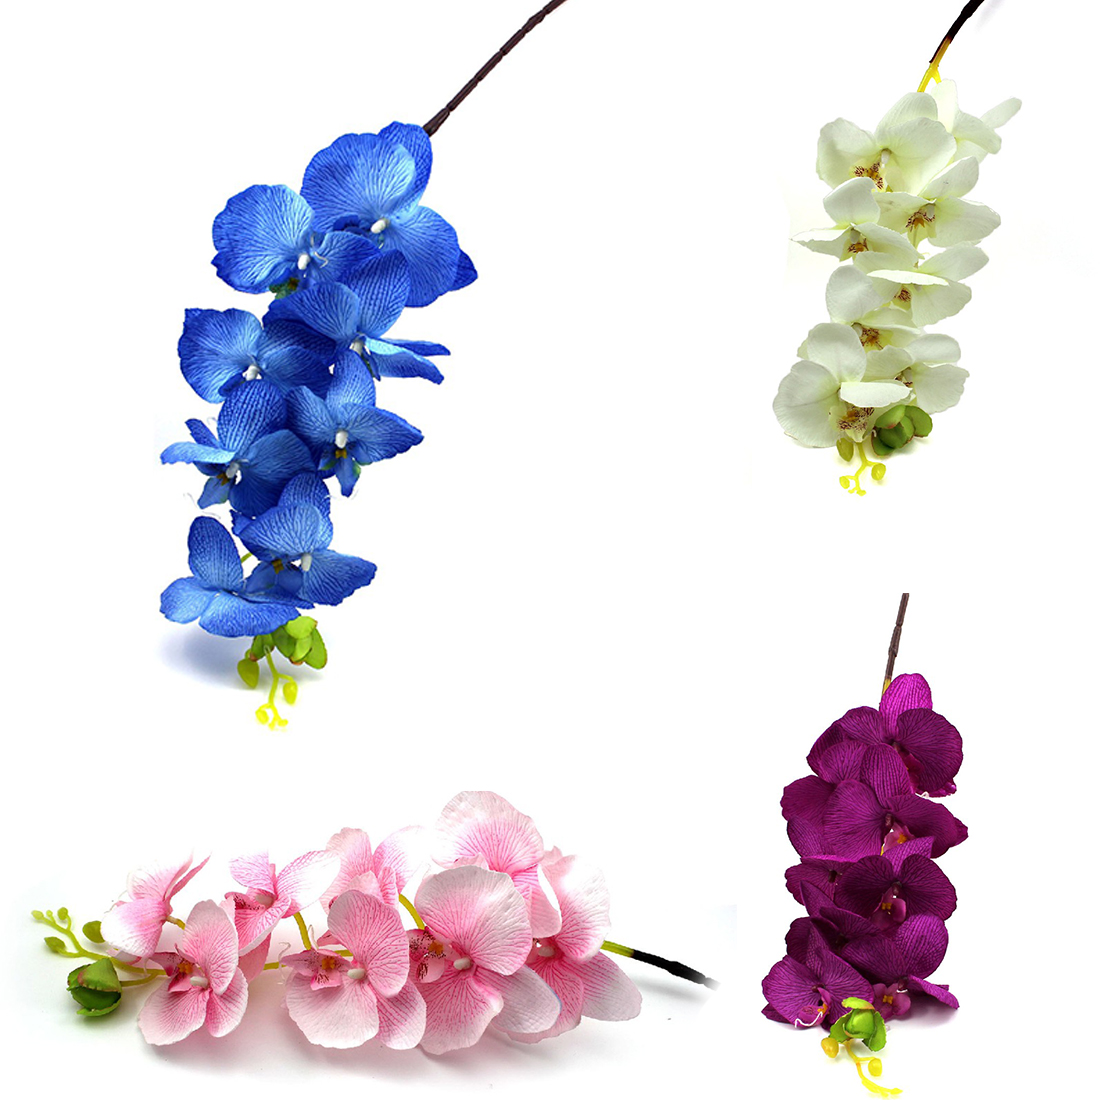 Wholesale 8Pcs Artificial Fake Flower Butterfly Orchid Silk Flower Home Wedding Party Decor Phalaenopsis Flower Arrangement(China (Mainland))